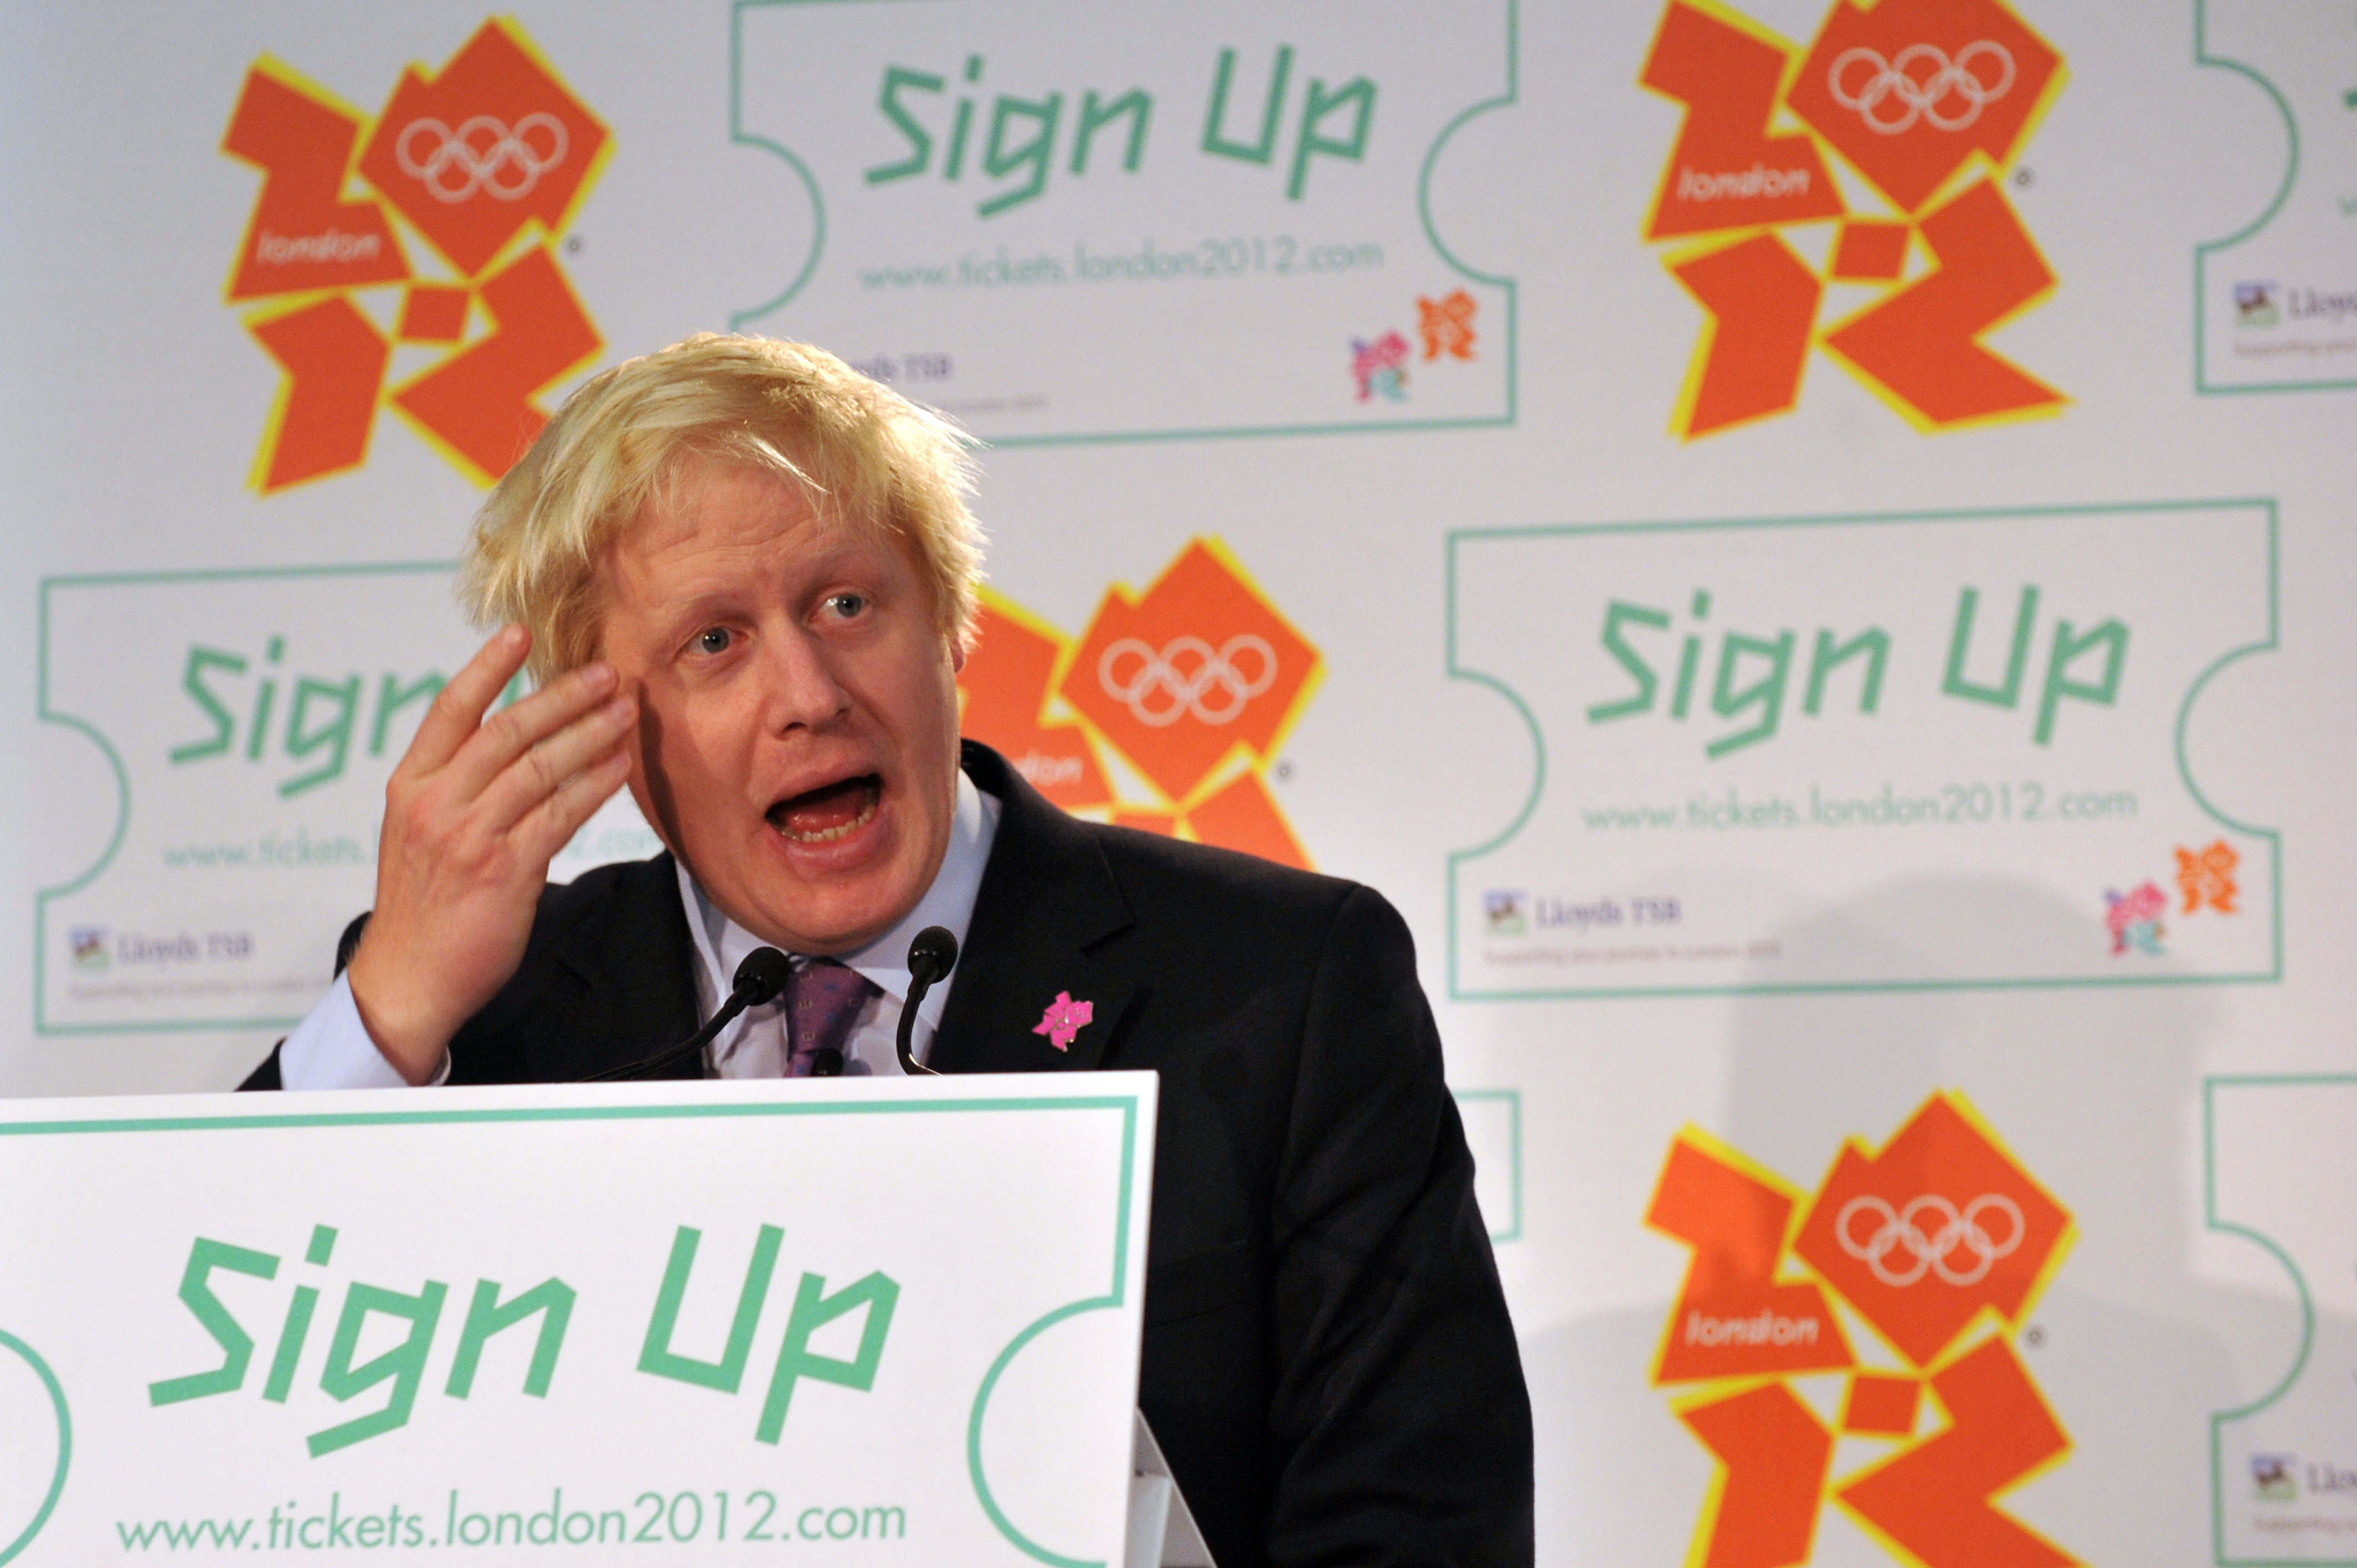 London Mayor Boris Johnson during a media conference at Newham Leisure Centre for the announcement of ticket prices for the London 2012 Olympics.